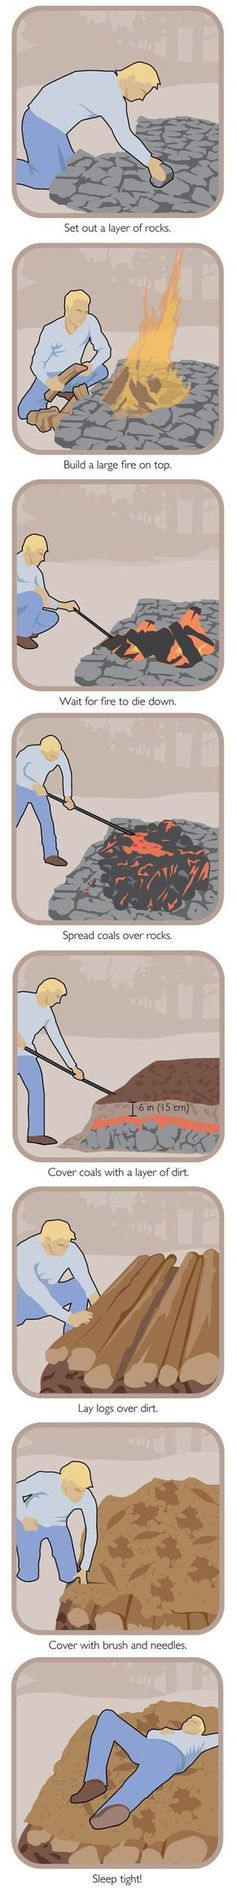 Survival Fire Bed - 17 Basic Wilderness Survival Skills Everyone Should Know